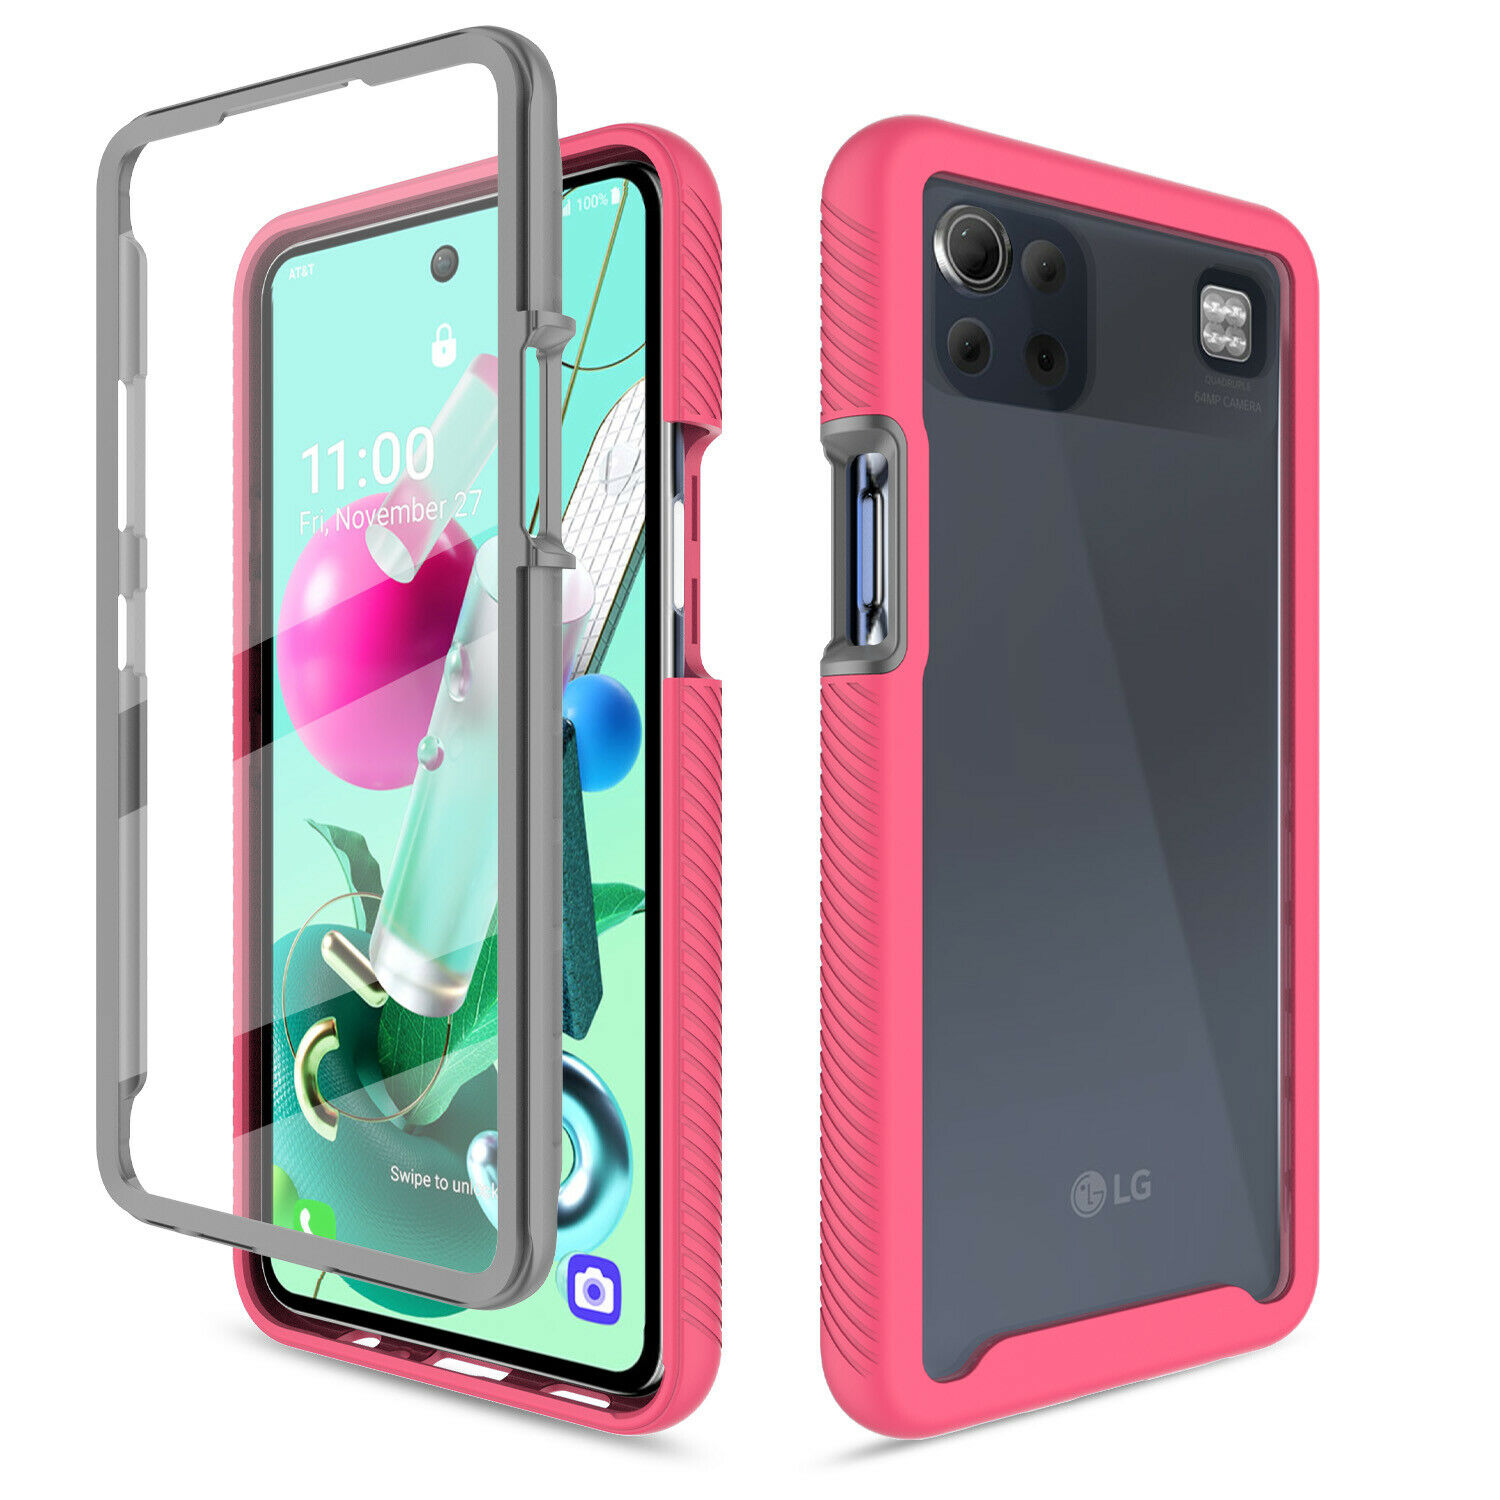 For LG K92 5G Case Shockproof Full Body Phone Cover W/ Built-In Screen Protector Cases, Covers & Skins